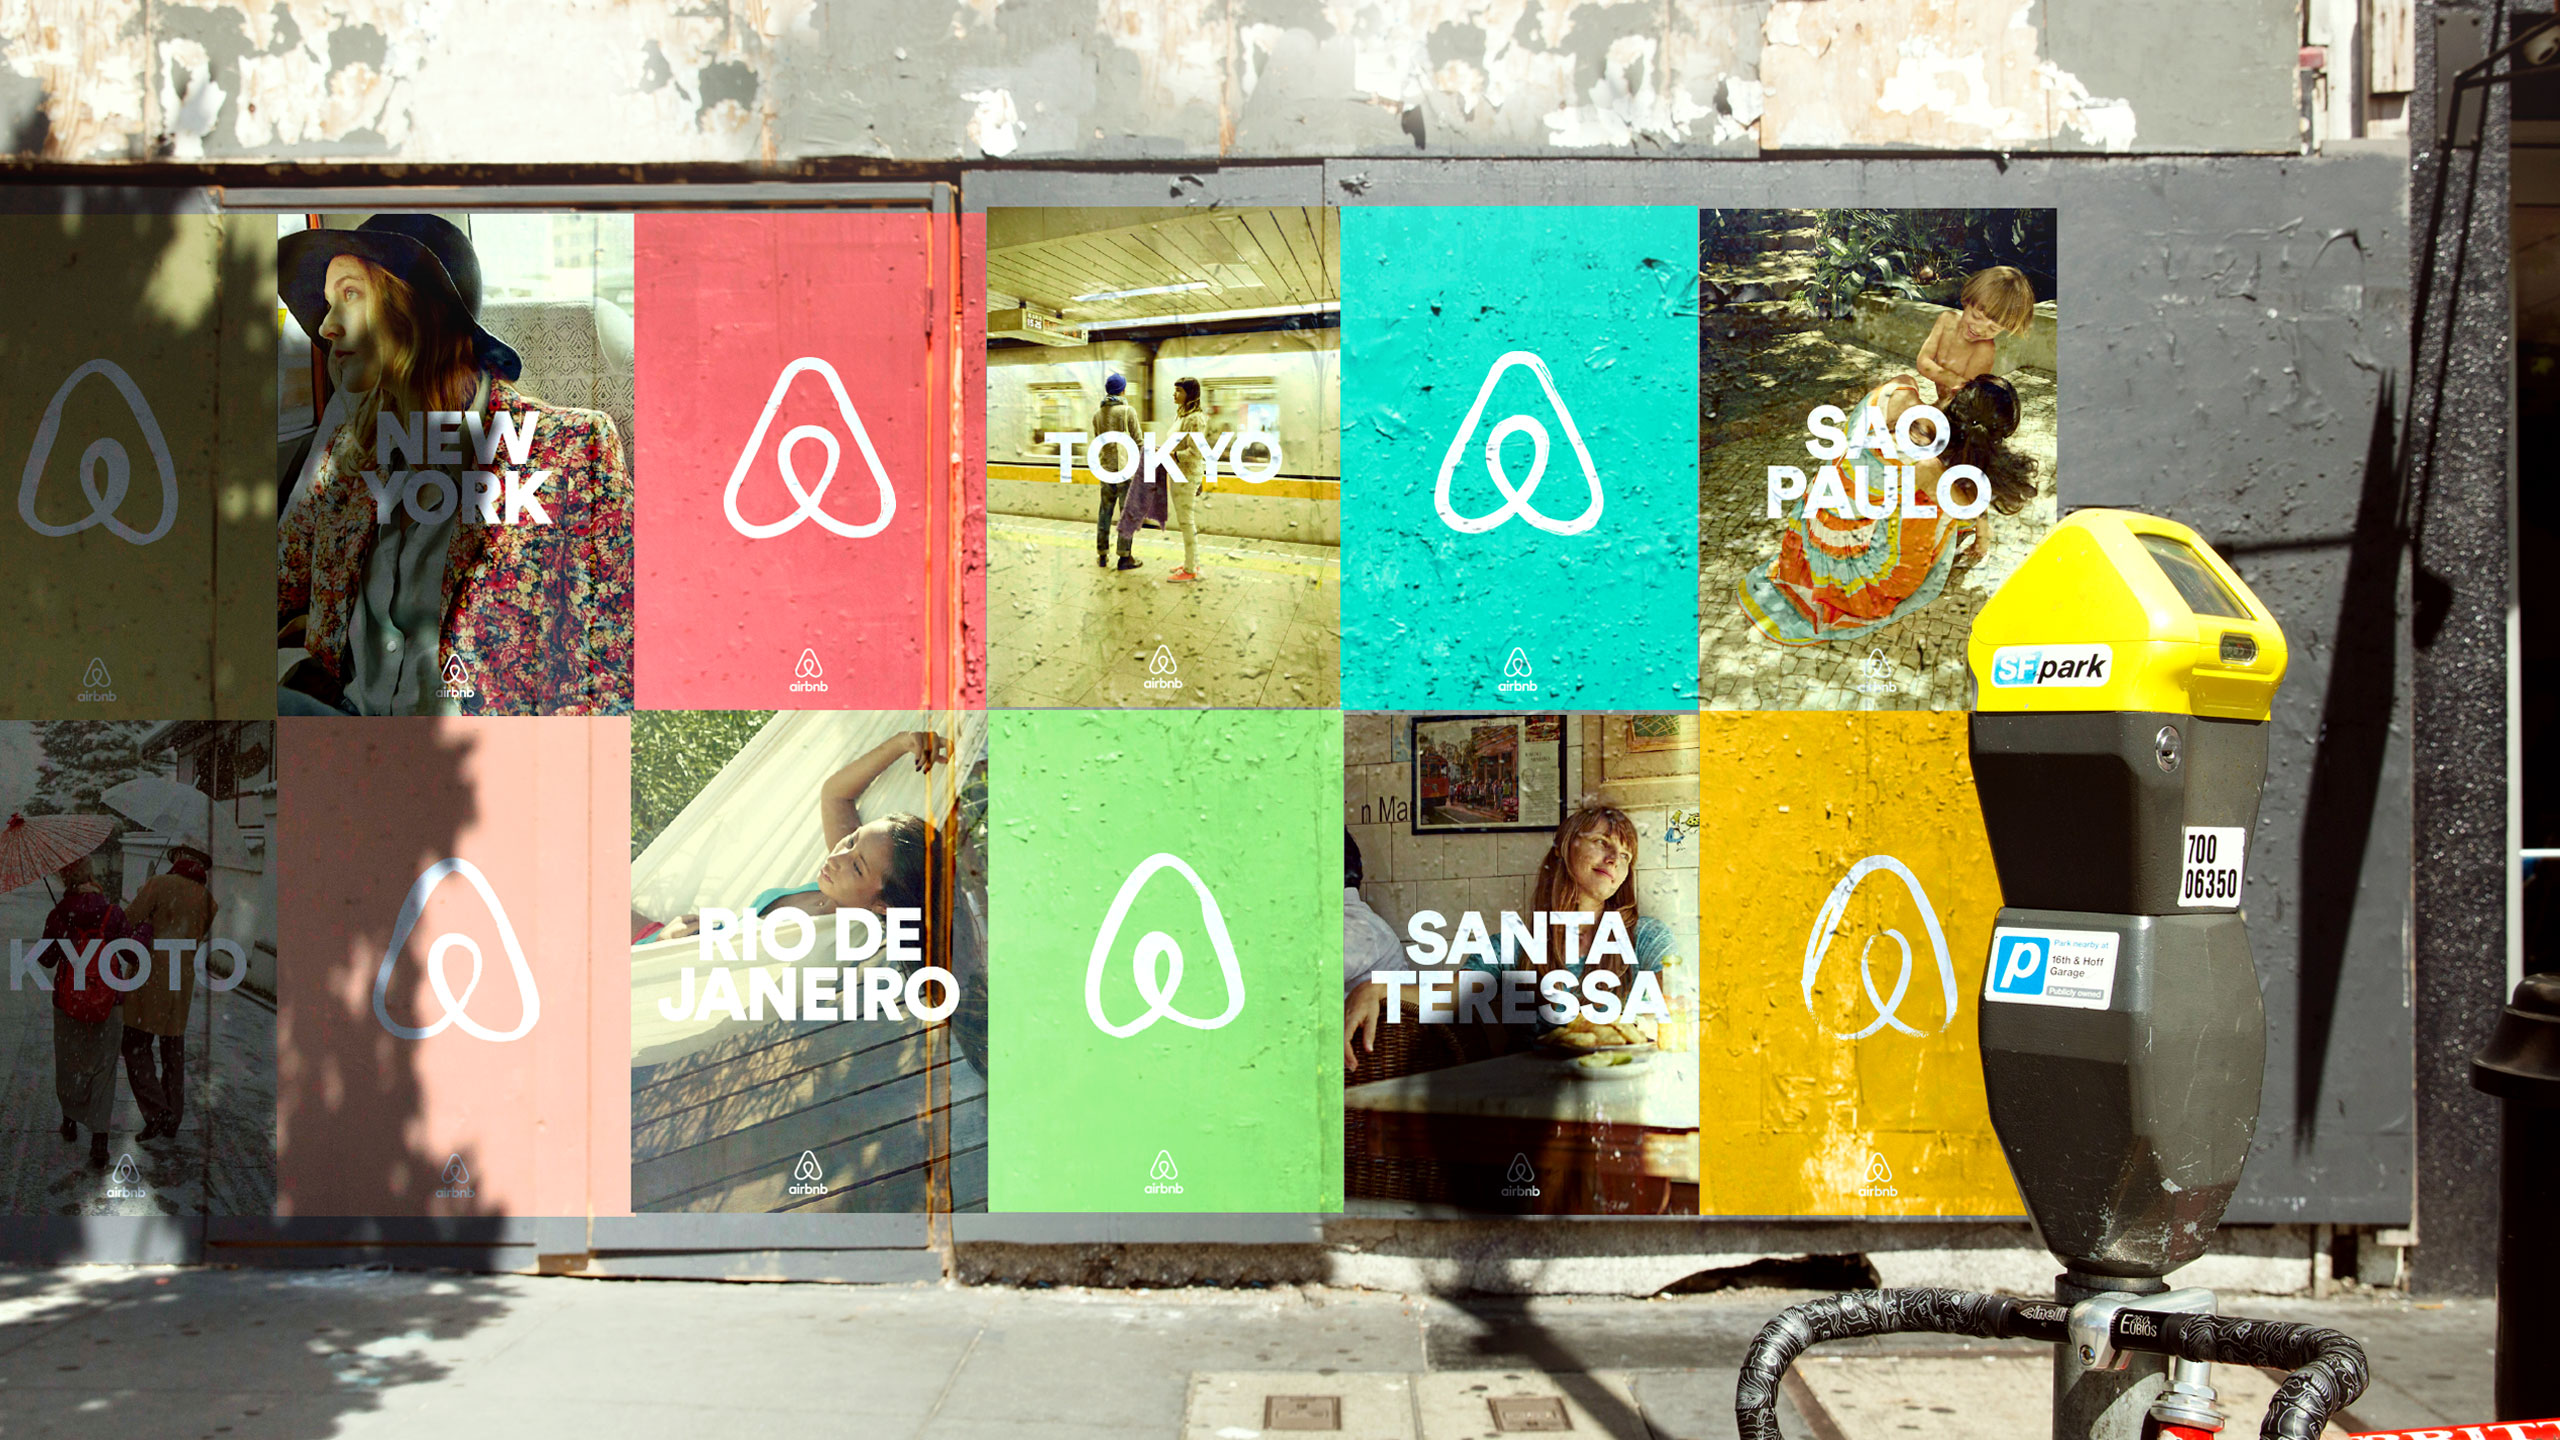 Airbnb identity, website, app (2014 redesign) - Fonts In Use